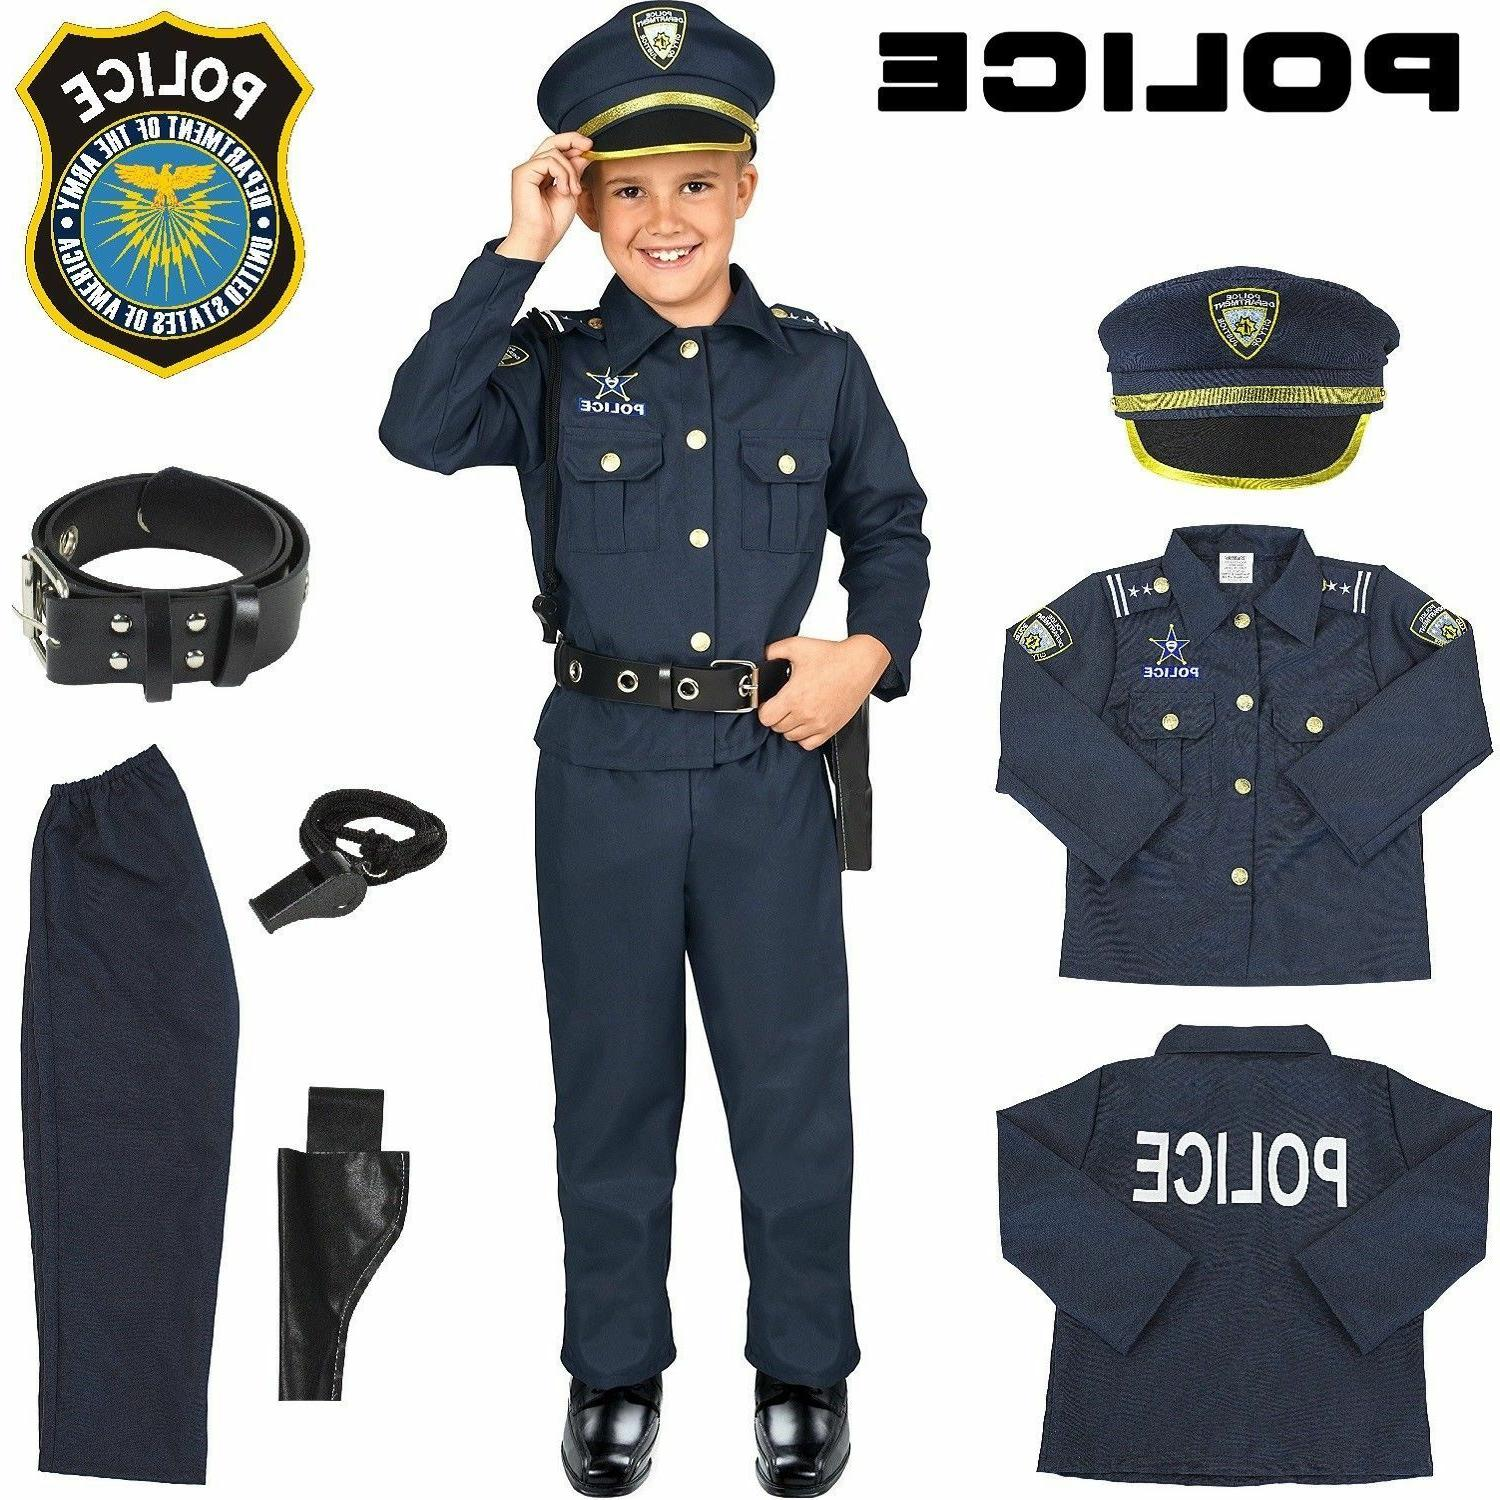 Police Officer Costume Kids Halloween Cosplay Boys Outfit